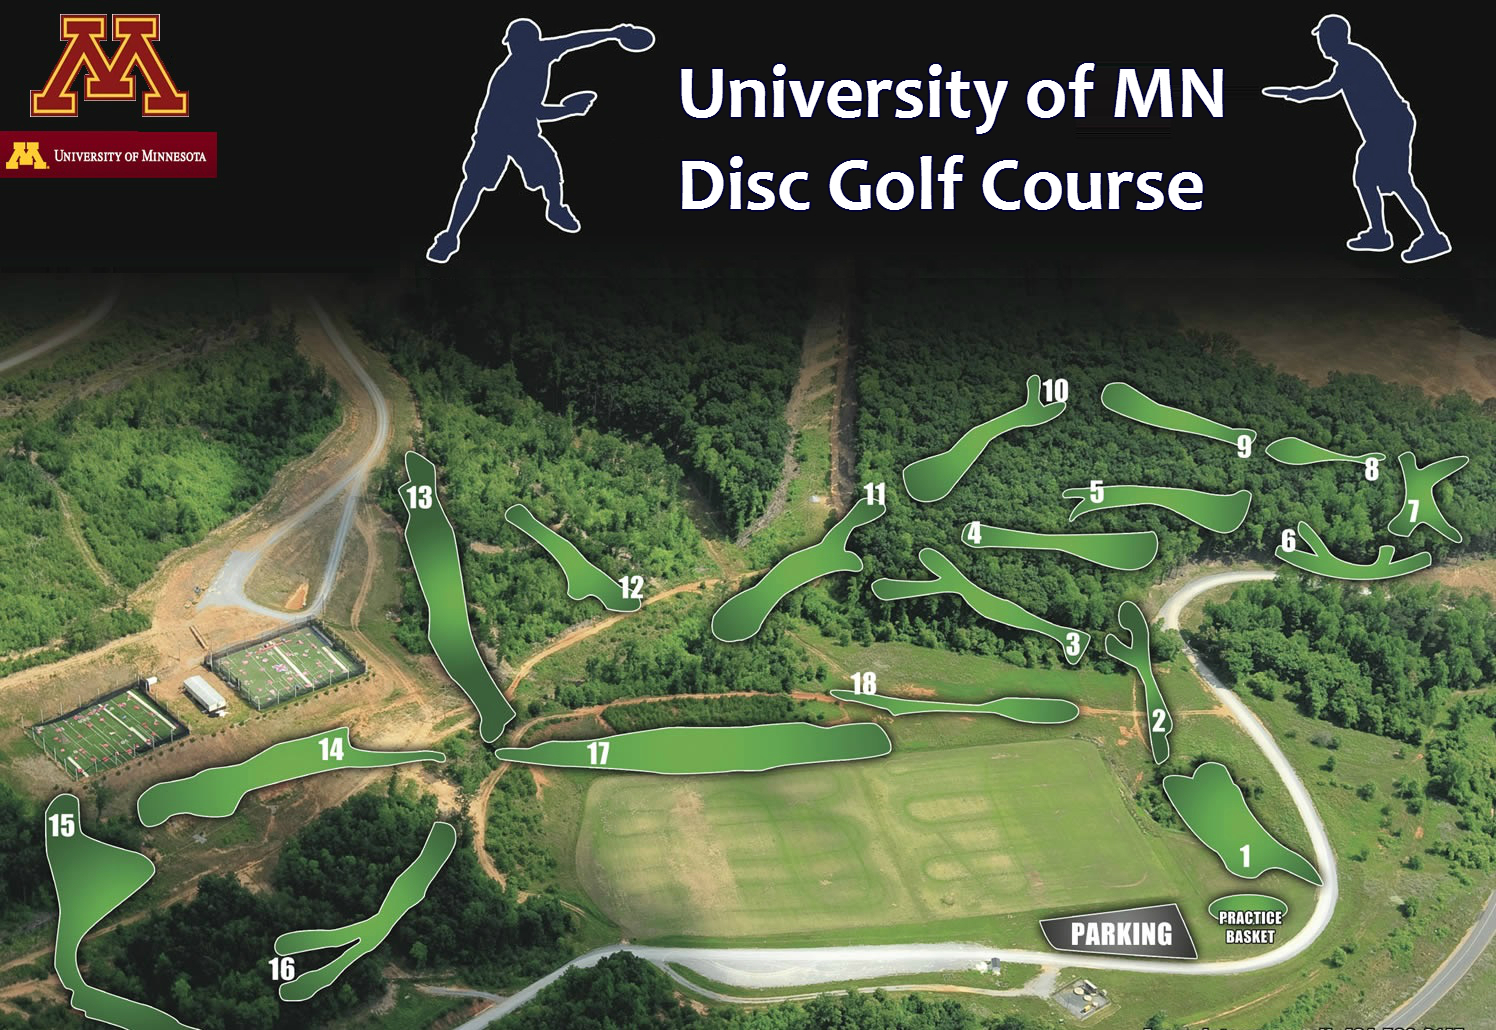 University of Minnesota disc golf, Bachelors in disc golf, disc golf degree, umn disc golf, u of Mn disc golf, study disc golf, disc golf how to, disc golf course university of minnesota